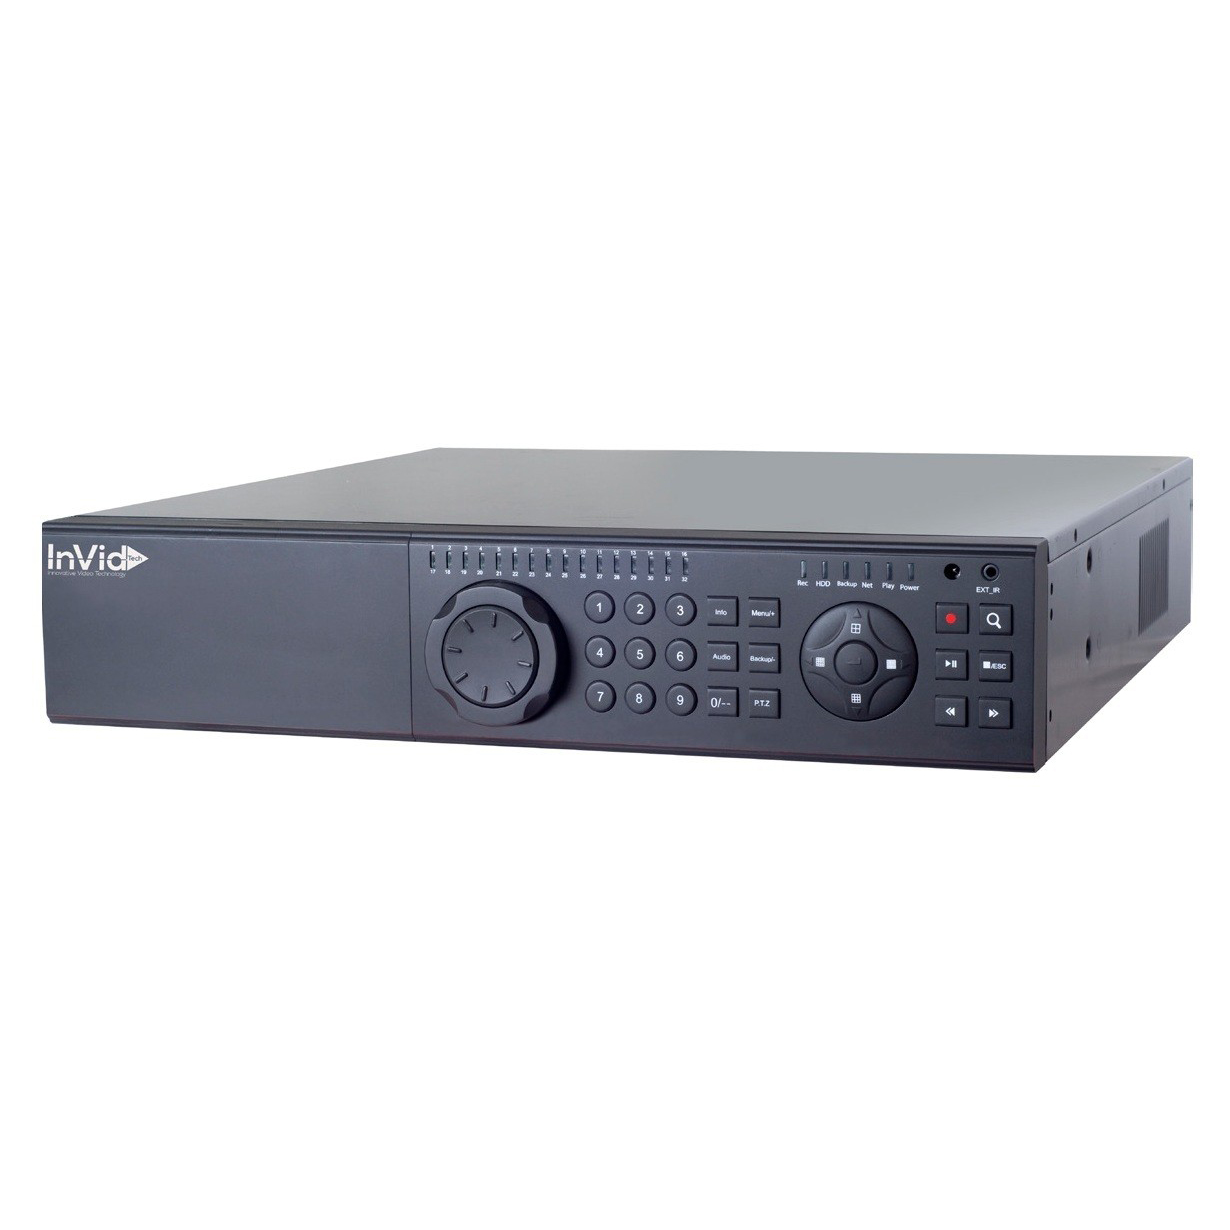 PN1A-32X16/4TB INVID 32 Channel NVR with 16 Plug & Play Ports, 4 TB ************************* SPECIAL ORDER ITEM NO RETURNS OR SUBJECT TO RESTOCK FEE *************************